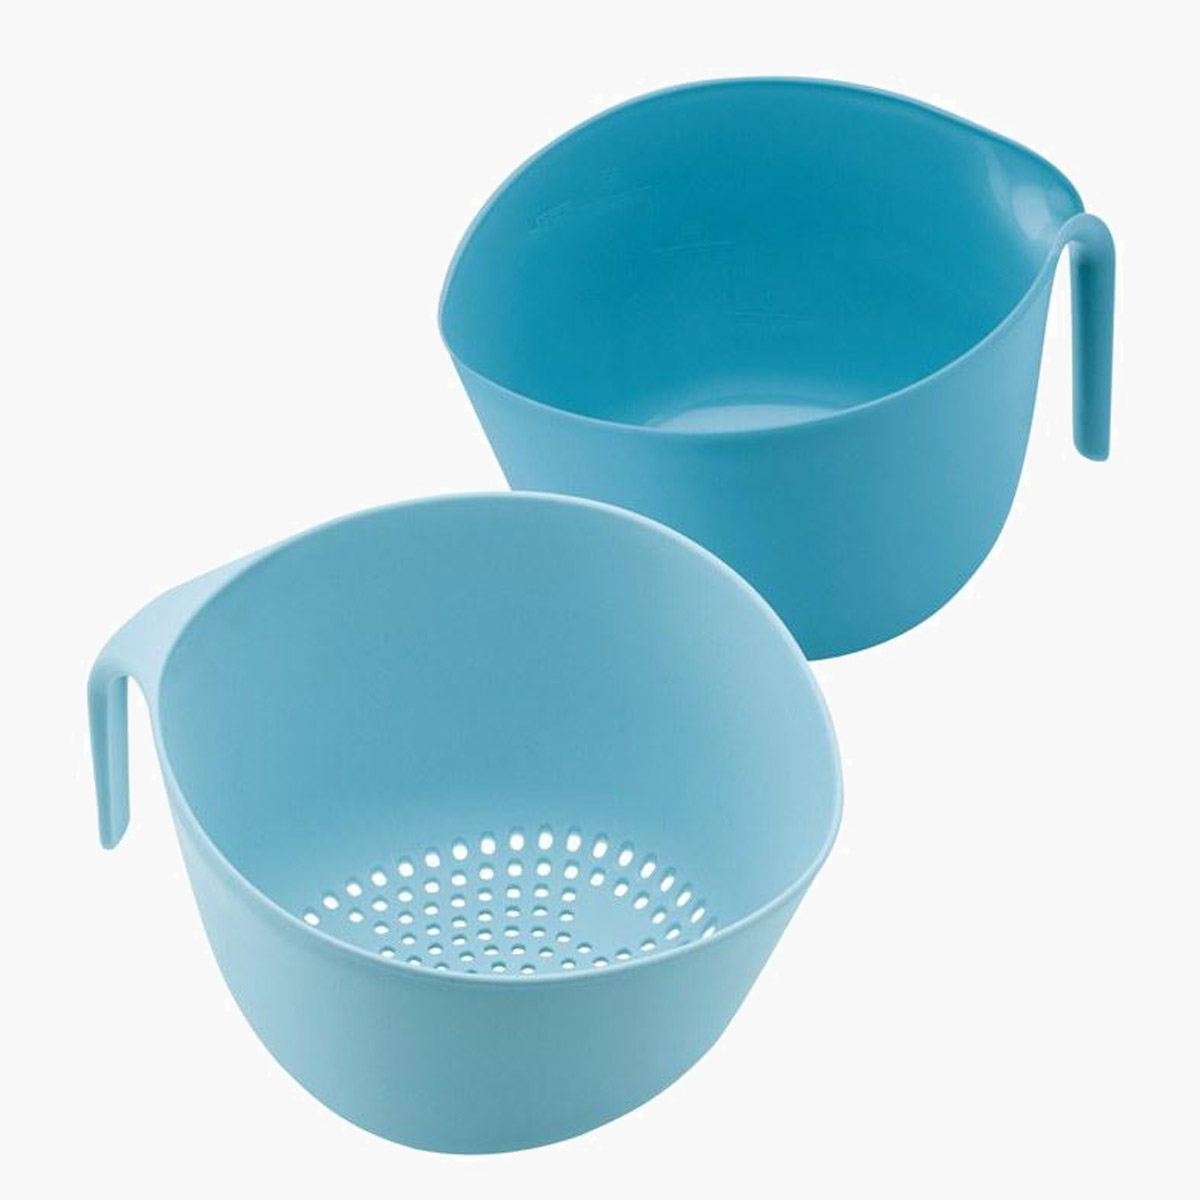 Ayesha Curry Two-Piece Mixing Bowl Set separated